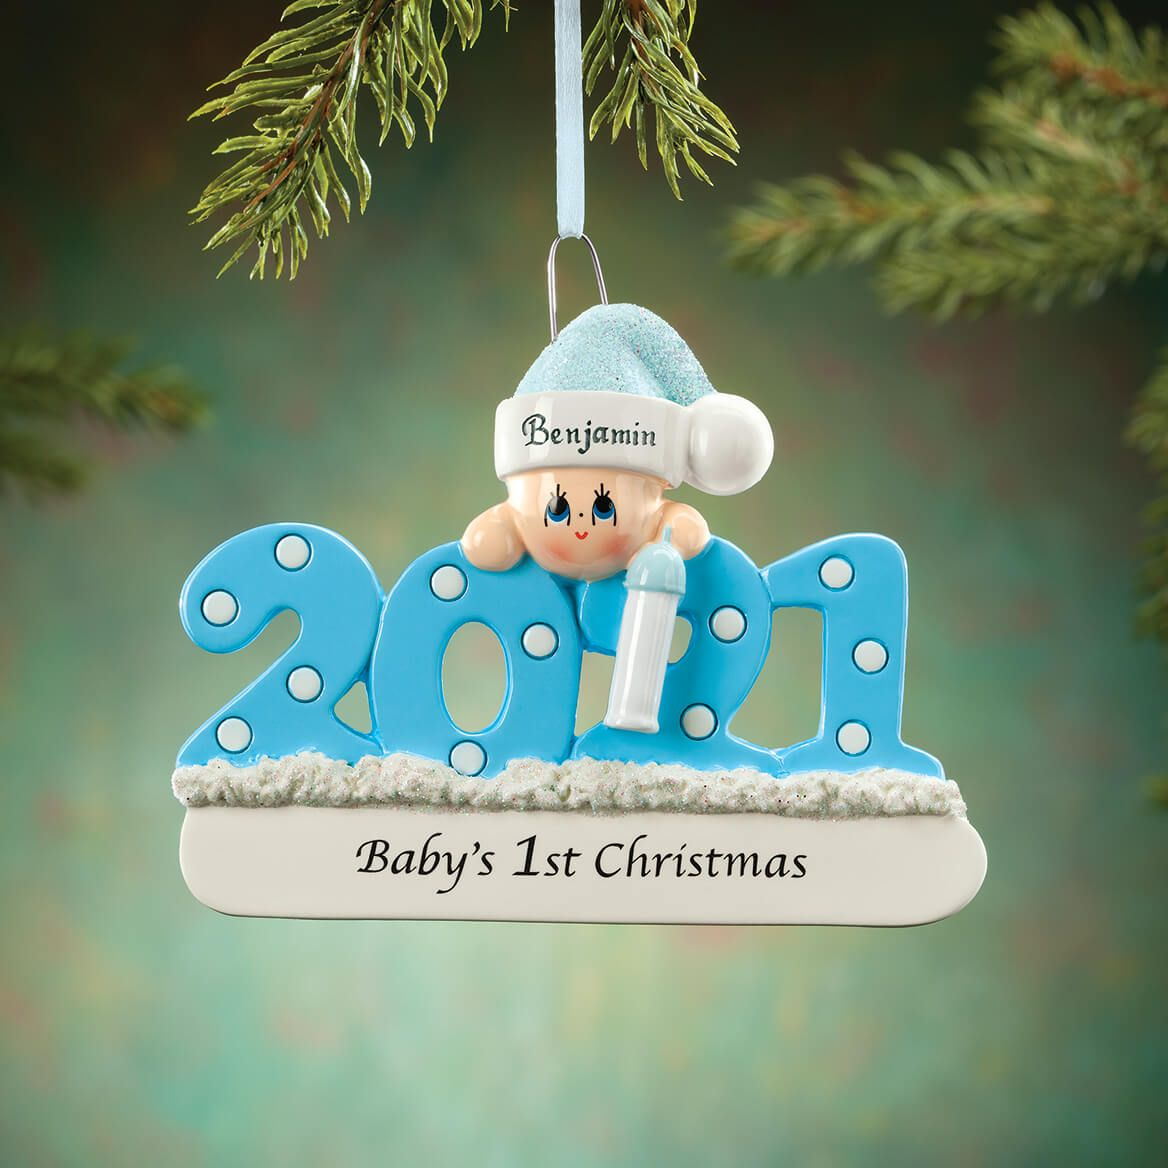 Personalized 2021 Baby's First Christmas Ornament-371945